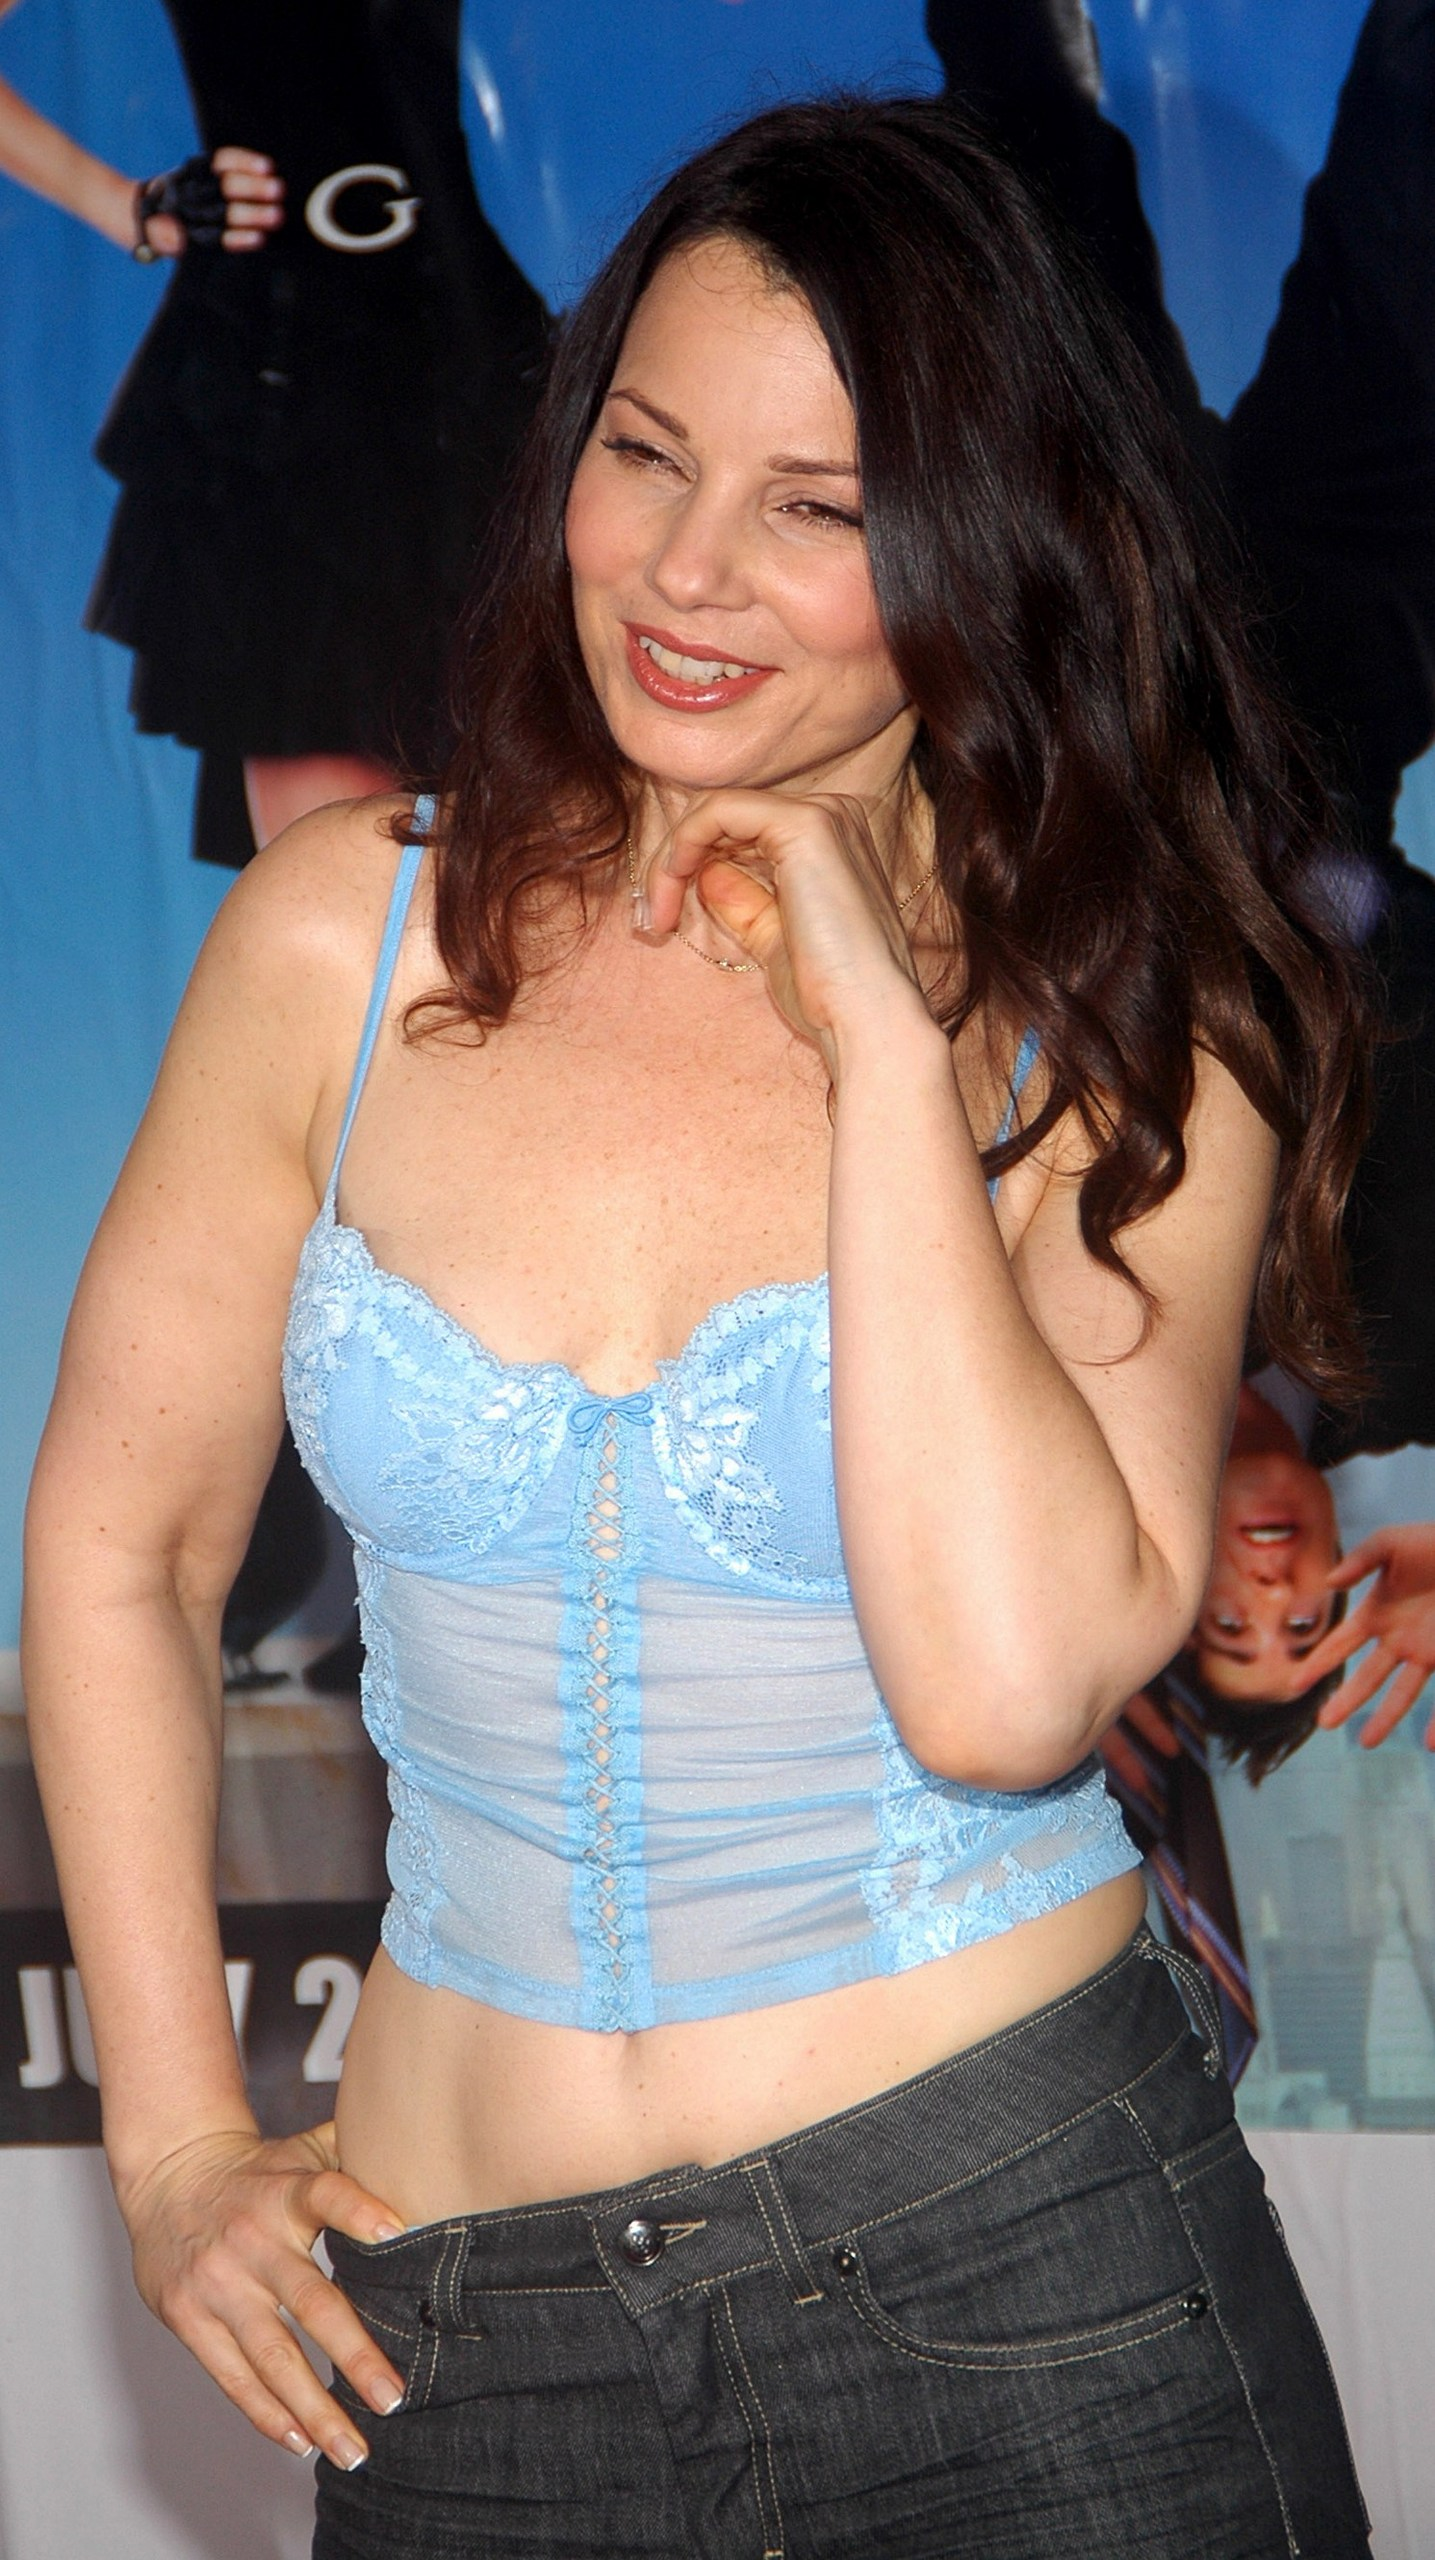 fran drescher 2016fran drescher wiki, fran drescher show, fran drescher nationality, fran drescher friends, fran drescher gif, fran drescher saturday, fran drescher laughing, fran drescher vegan, fran drescher ufo, fran drescher instagram, fran drescher 2016, fran drescher films, fran drescher aliens, fran drescher photo hot, fran drescher charles shaughnessy married, fran drescher interview